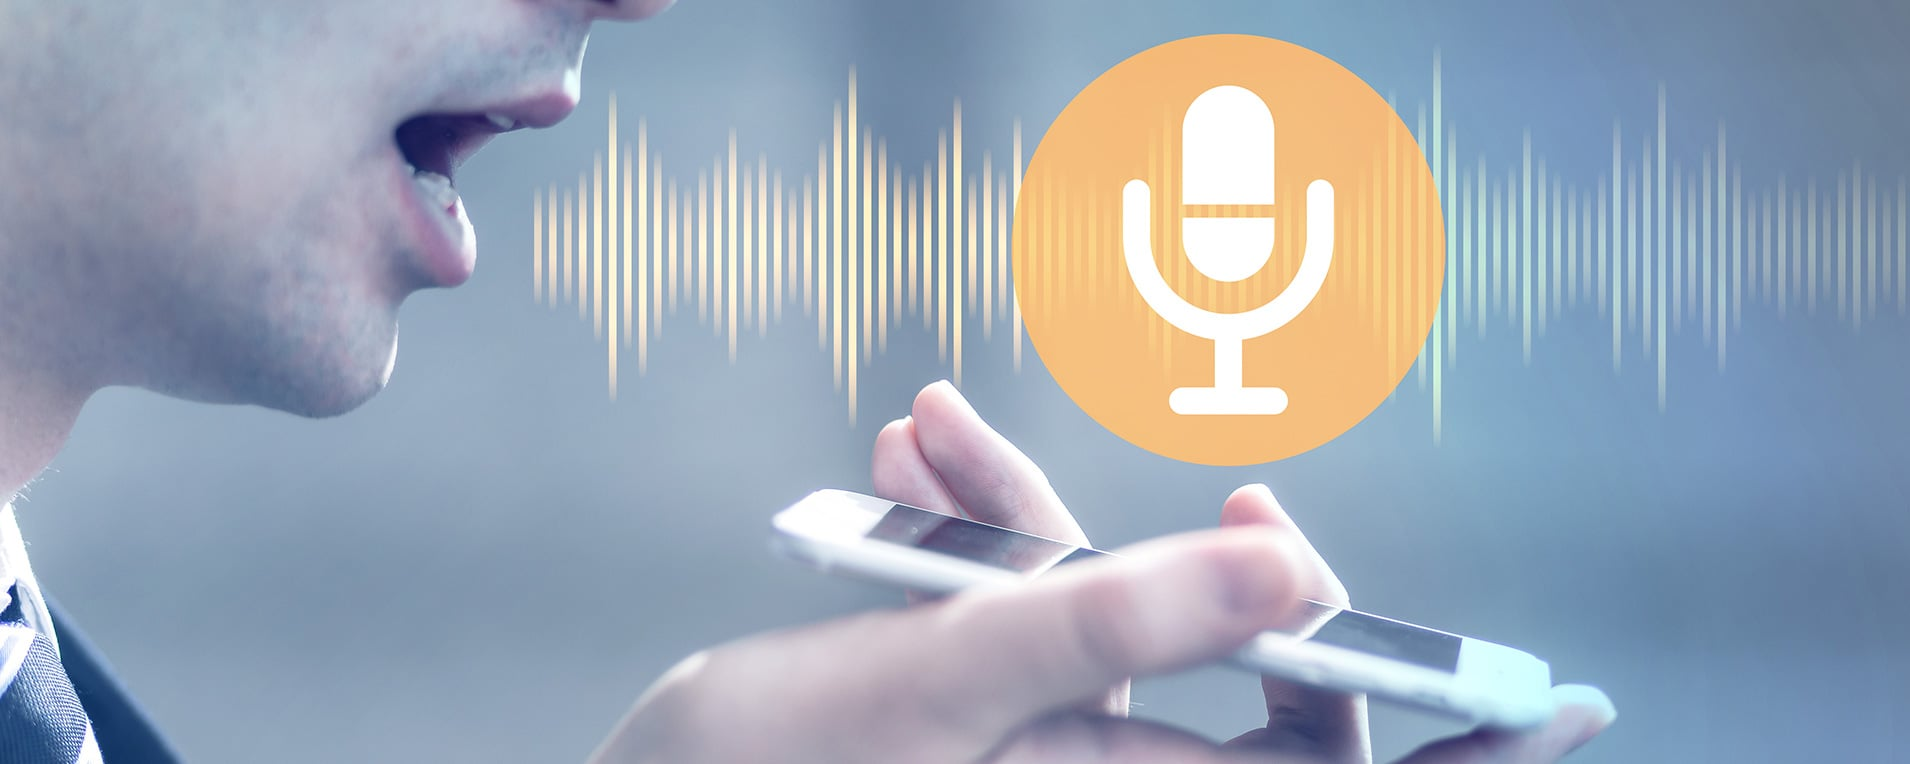 SEO for Voice Search: Top Tips for Marketers